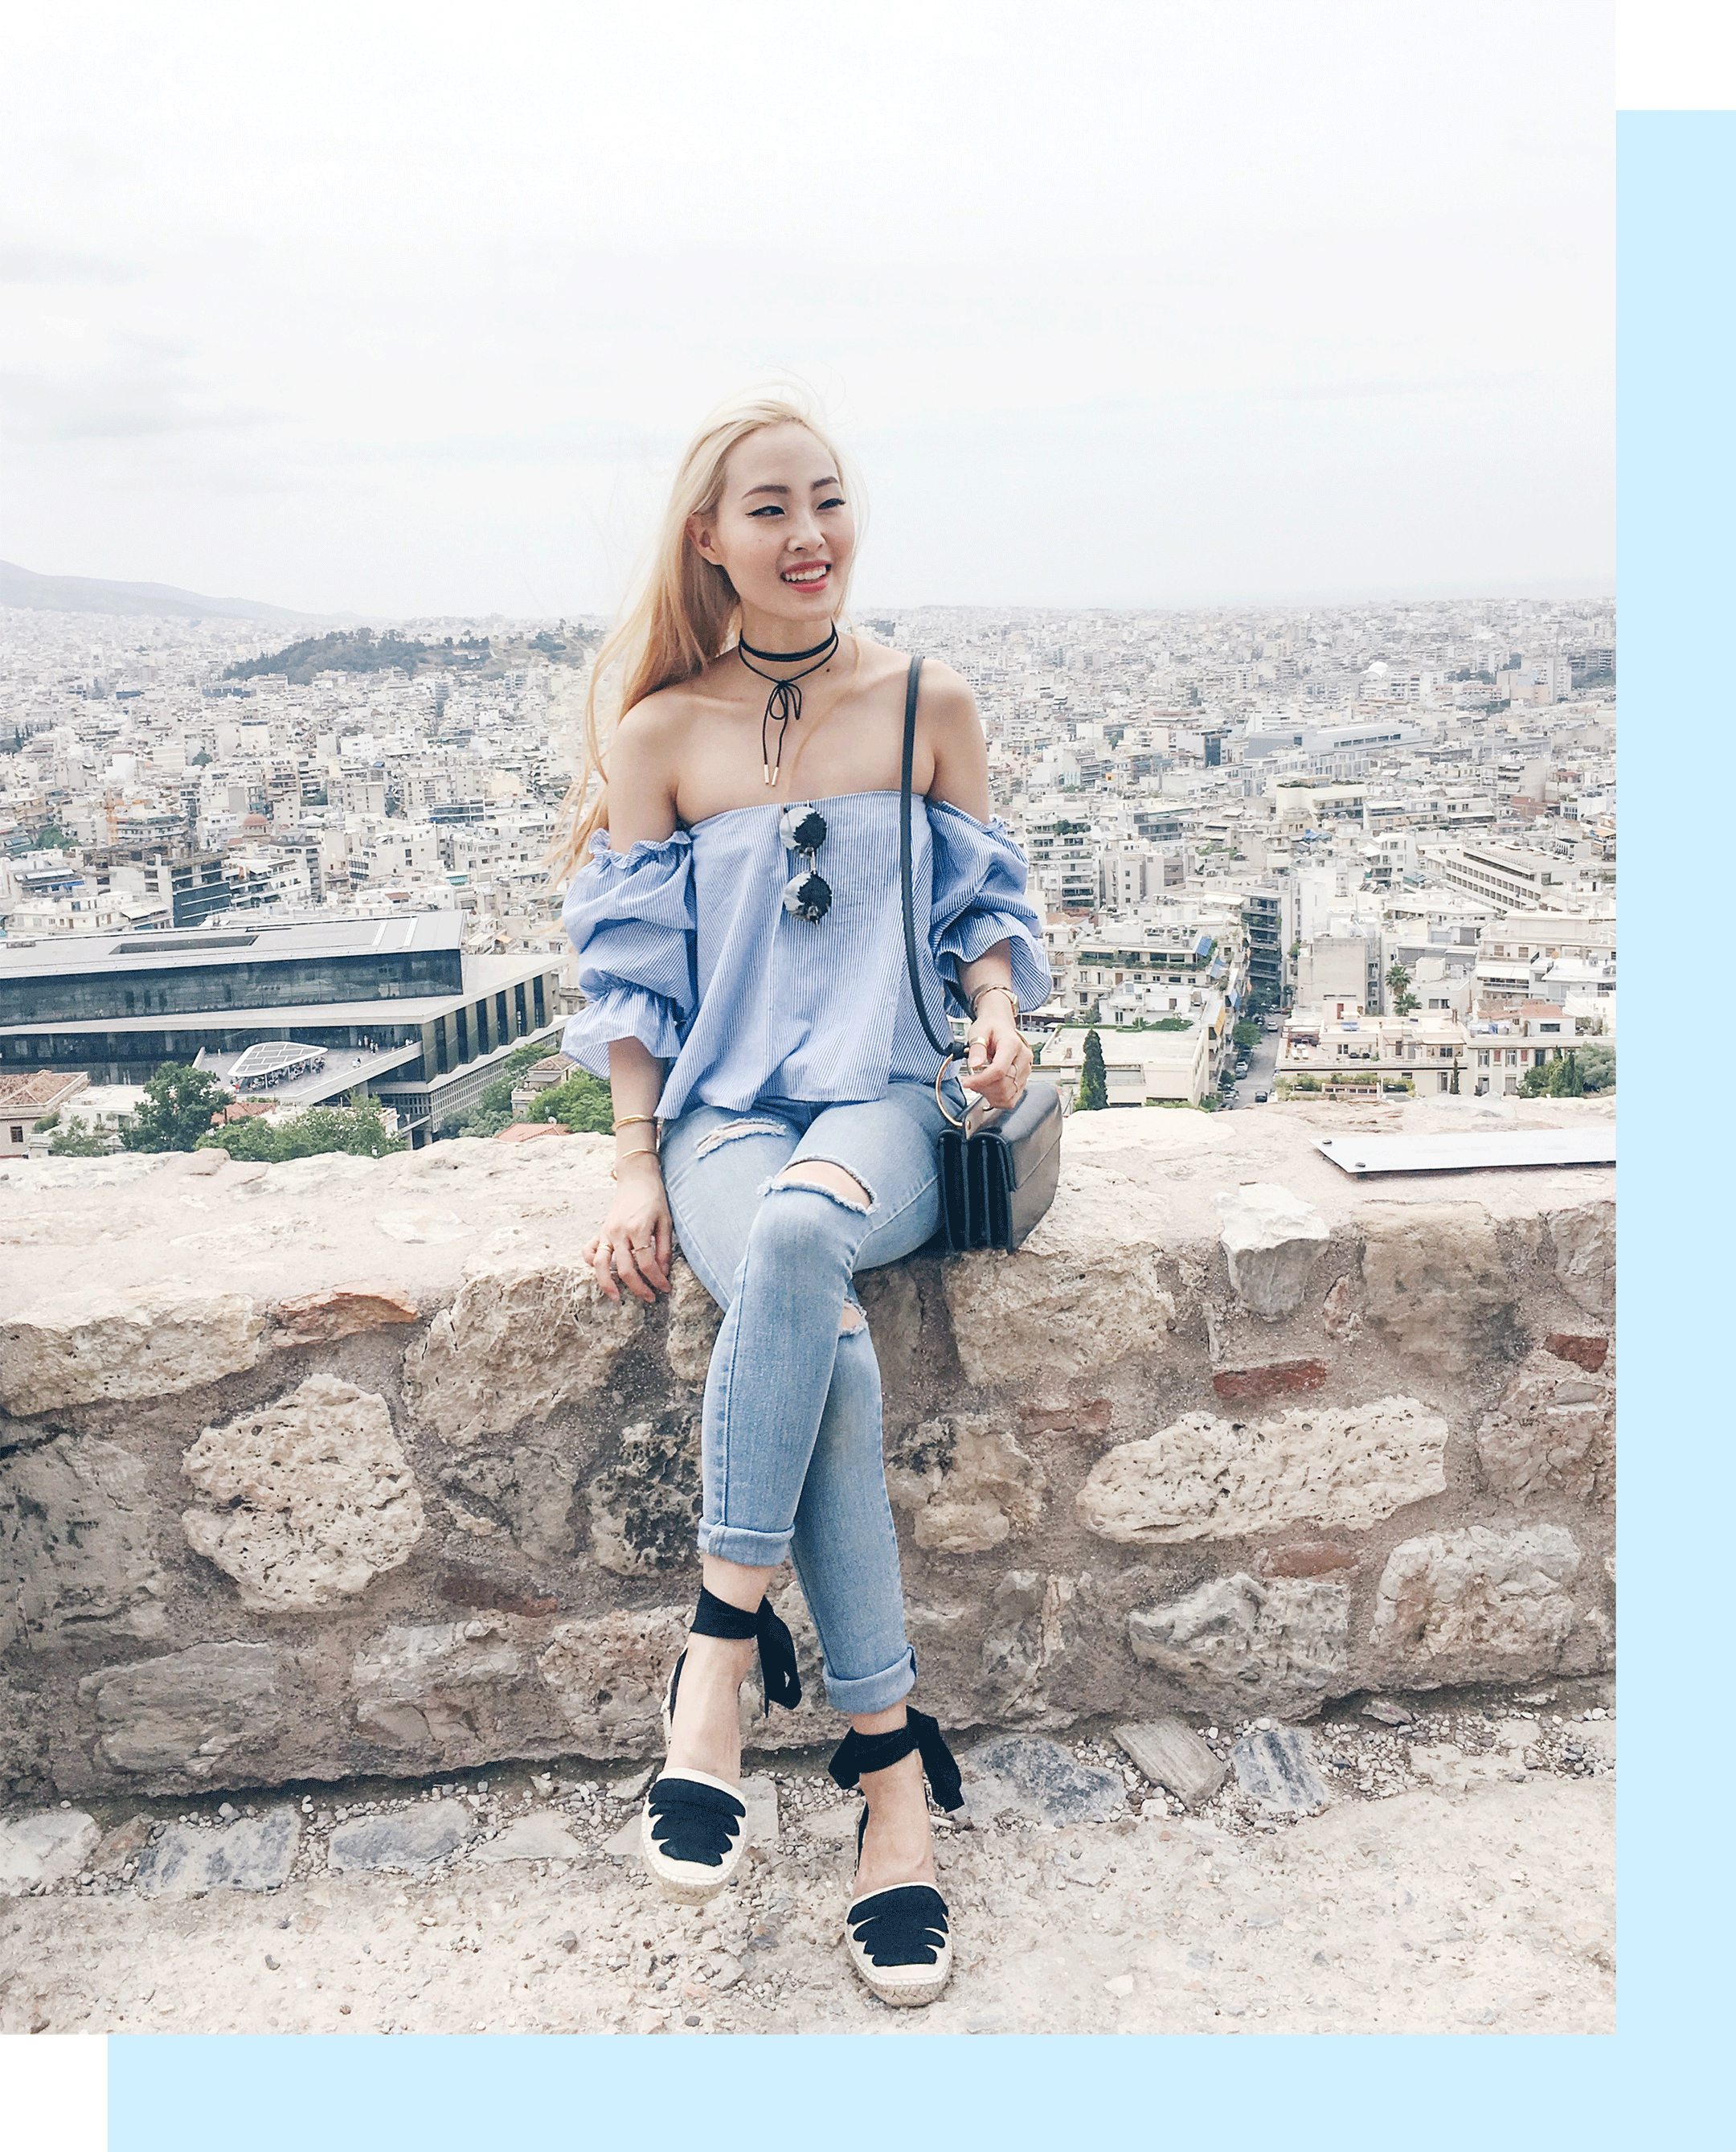 This is the first look from my trip to Greece this month! My Athens #traveloutfit was all about feeling chic yet practical. Comfy espadrilles were key for all the walking, a good pair of denim for comfort, and a flowy OTS blouse to keep cool. Check out the outfit details on the blog! | #lookbook | #summerstyle | #shopthelook | #summerfashion | What to wear in Greece | #ootd | Athens outfit